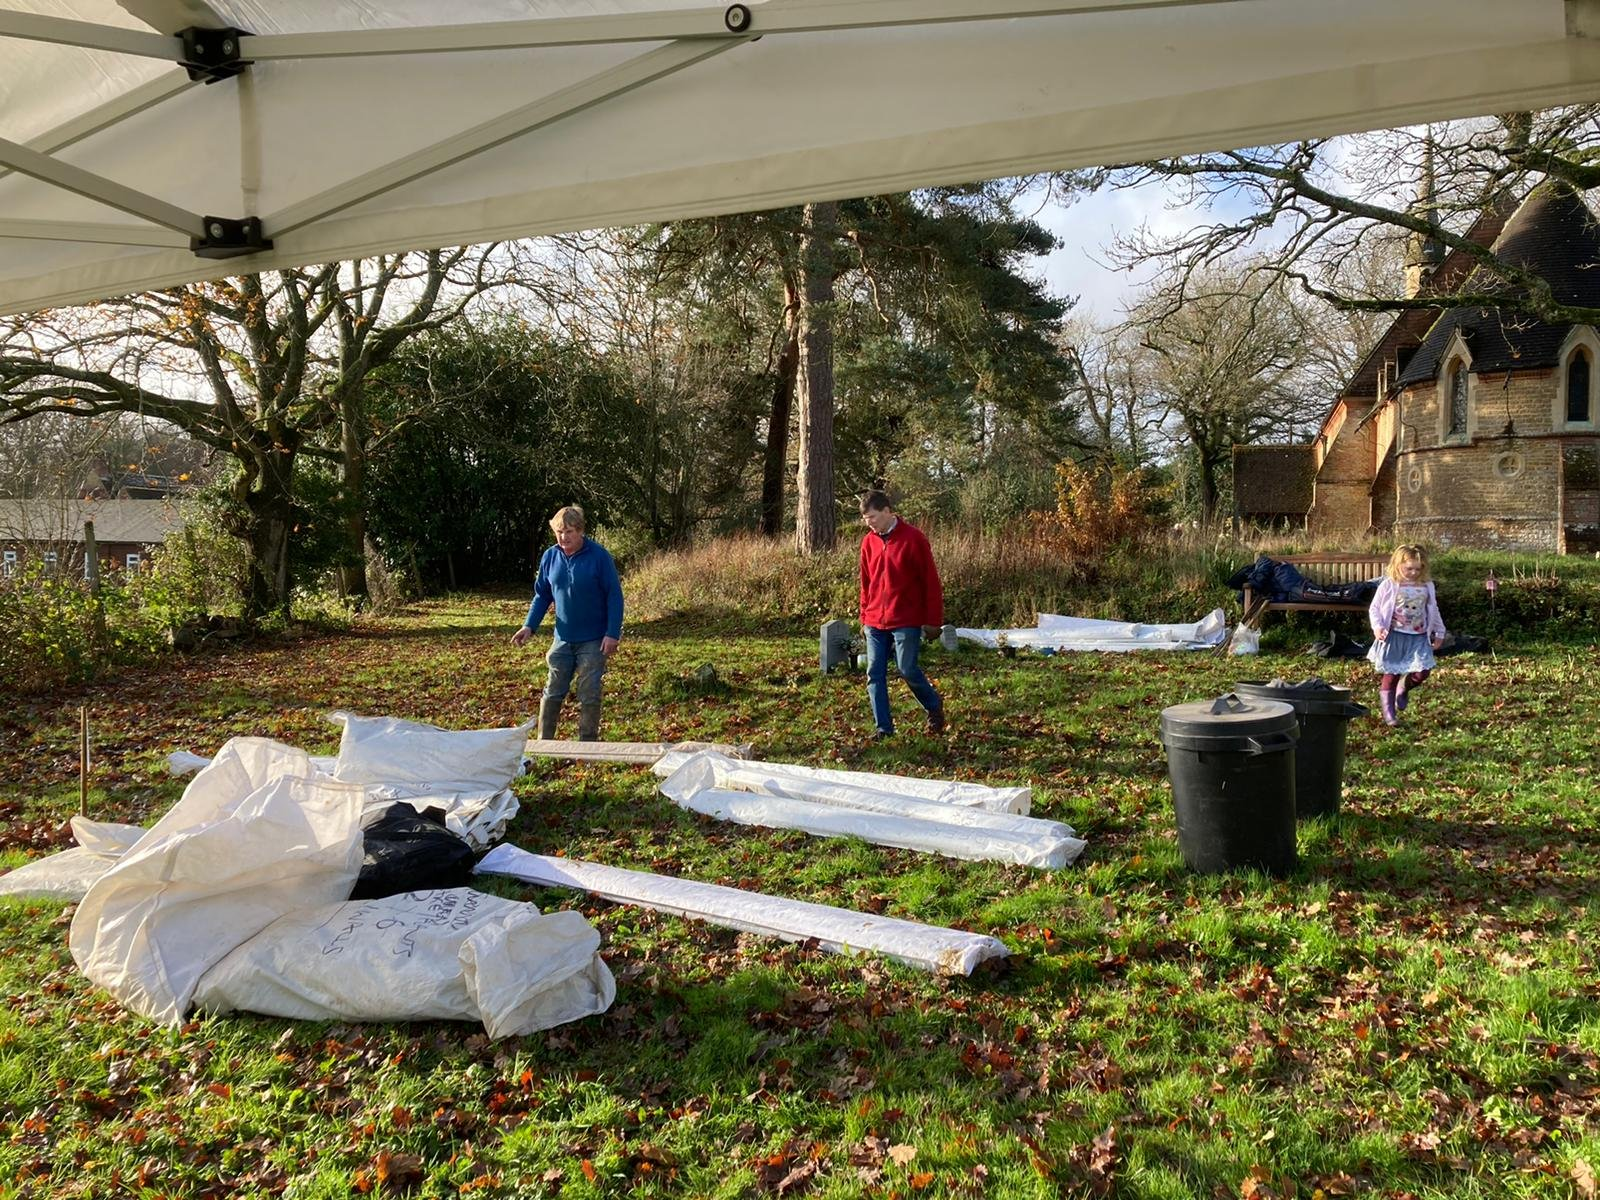 Setting up the gazebos for the Carol Service 6